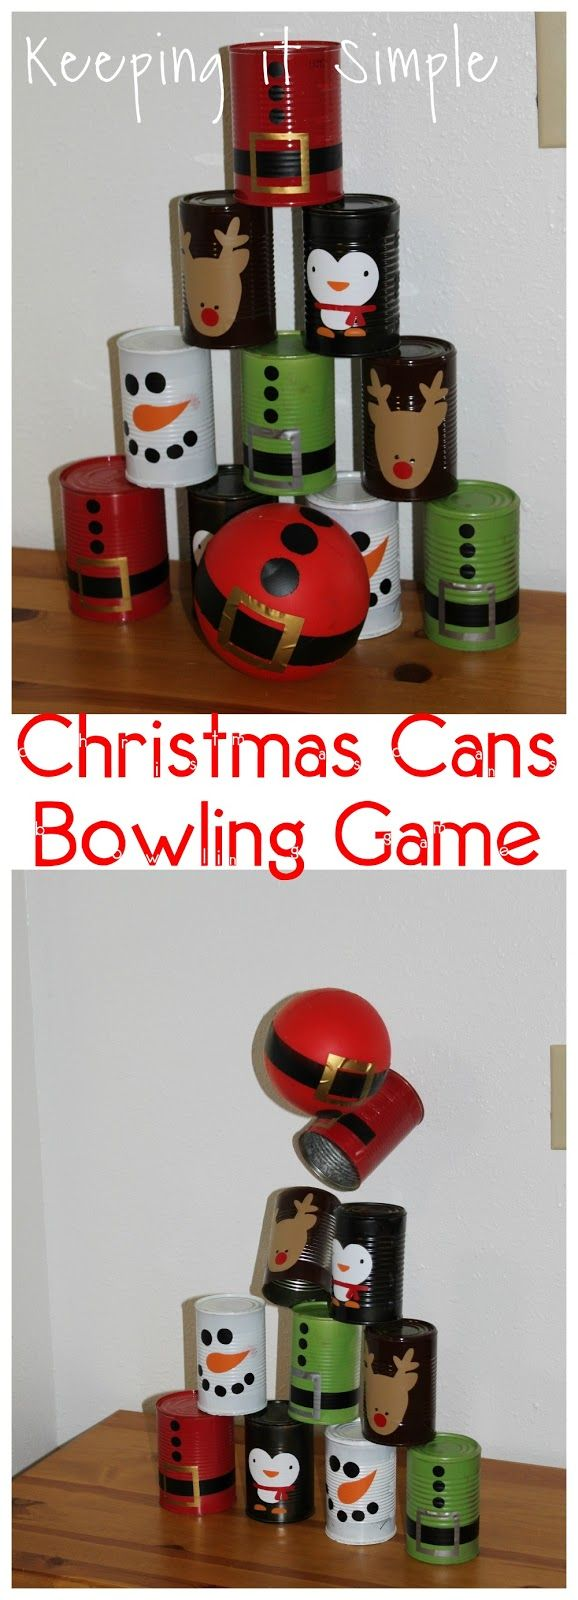 Keeping it Simple: Christmas character cans bowling game. Great game for school Christmas parties or to entertain kids over Christmas break.